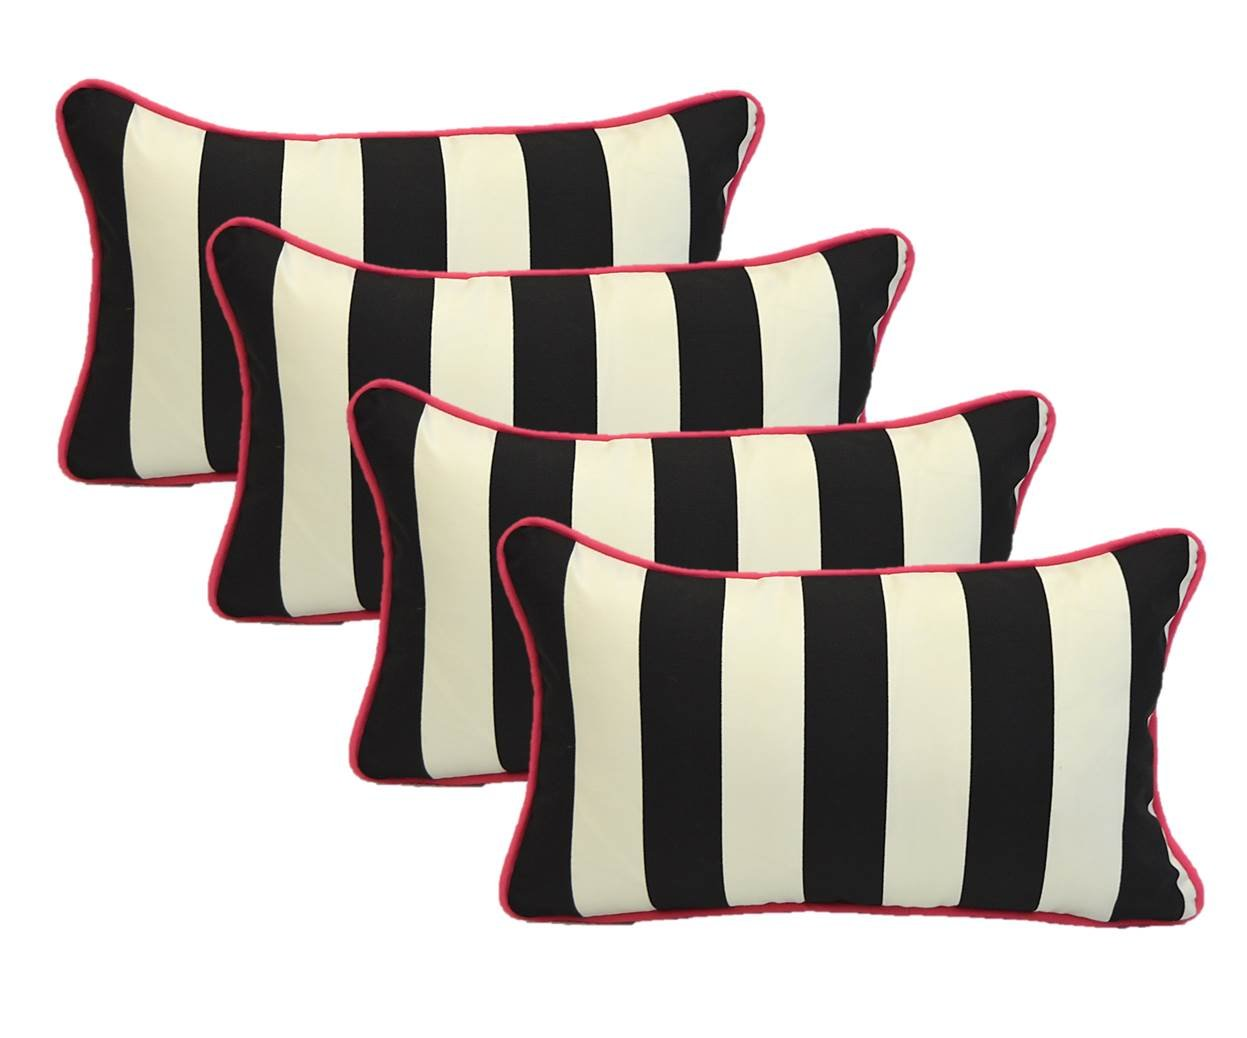 Resort Spa Home Decor Set of 4 Indoor Outdoor Decorative Lumbar Rectangle Pillows – Black and White Stripe with Hot Pink Piping Cording – Zipper Cover Insert